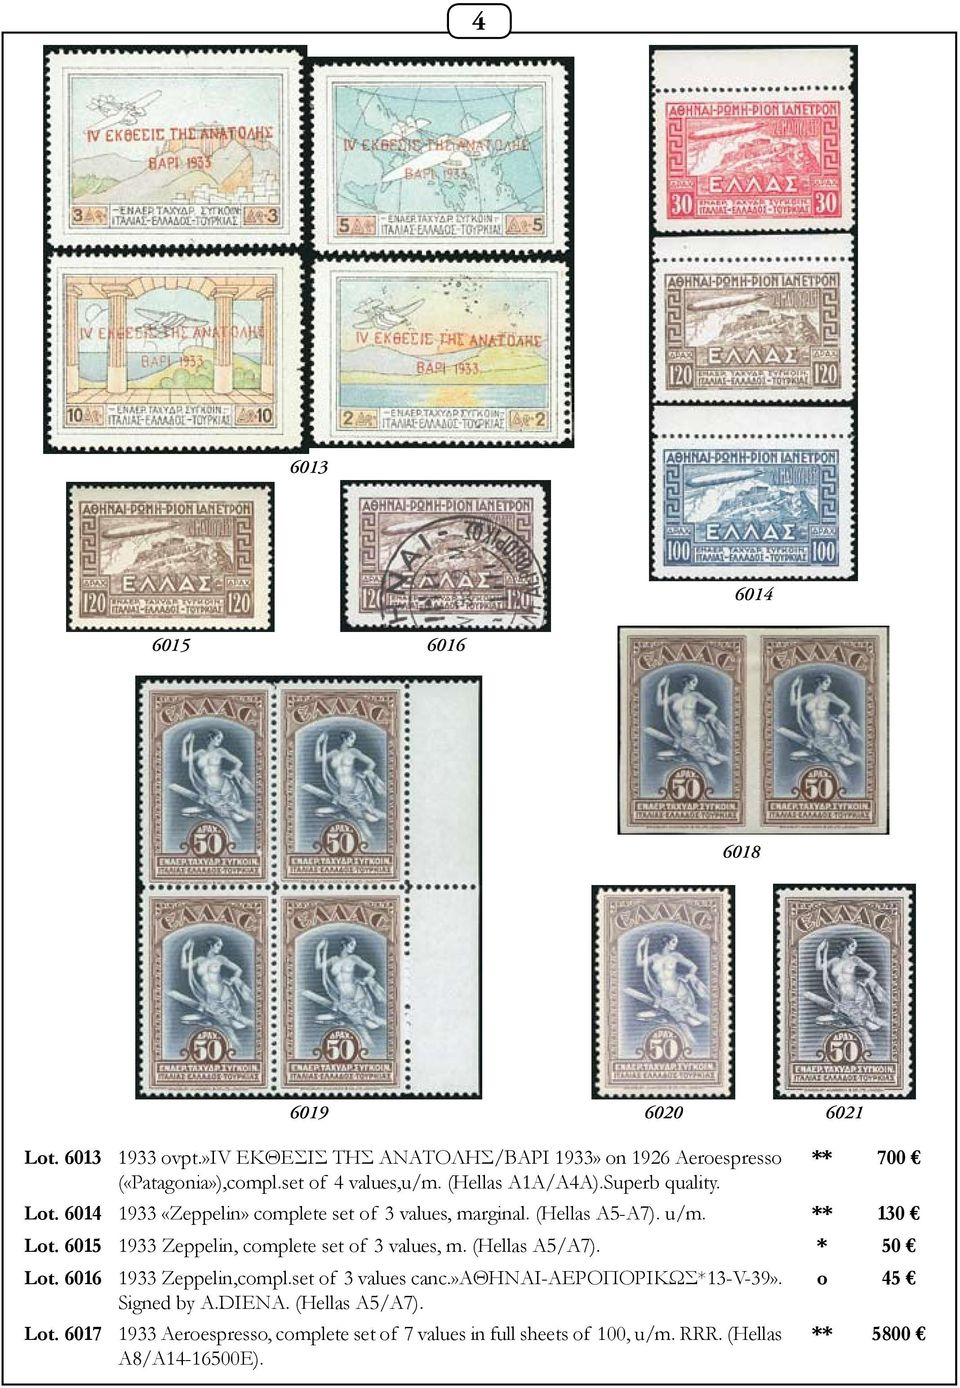 6015 1933 Zeppelin, complete set of 3 values, m. (Hellas A5/A7). * 50 Lot. 6016 1933 Zeppelin,compl.set of 3 values canc.»αθηναι-αεροπορικωσ*13-v-39».